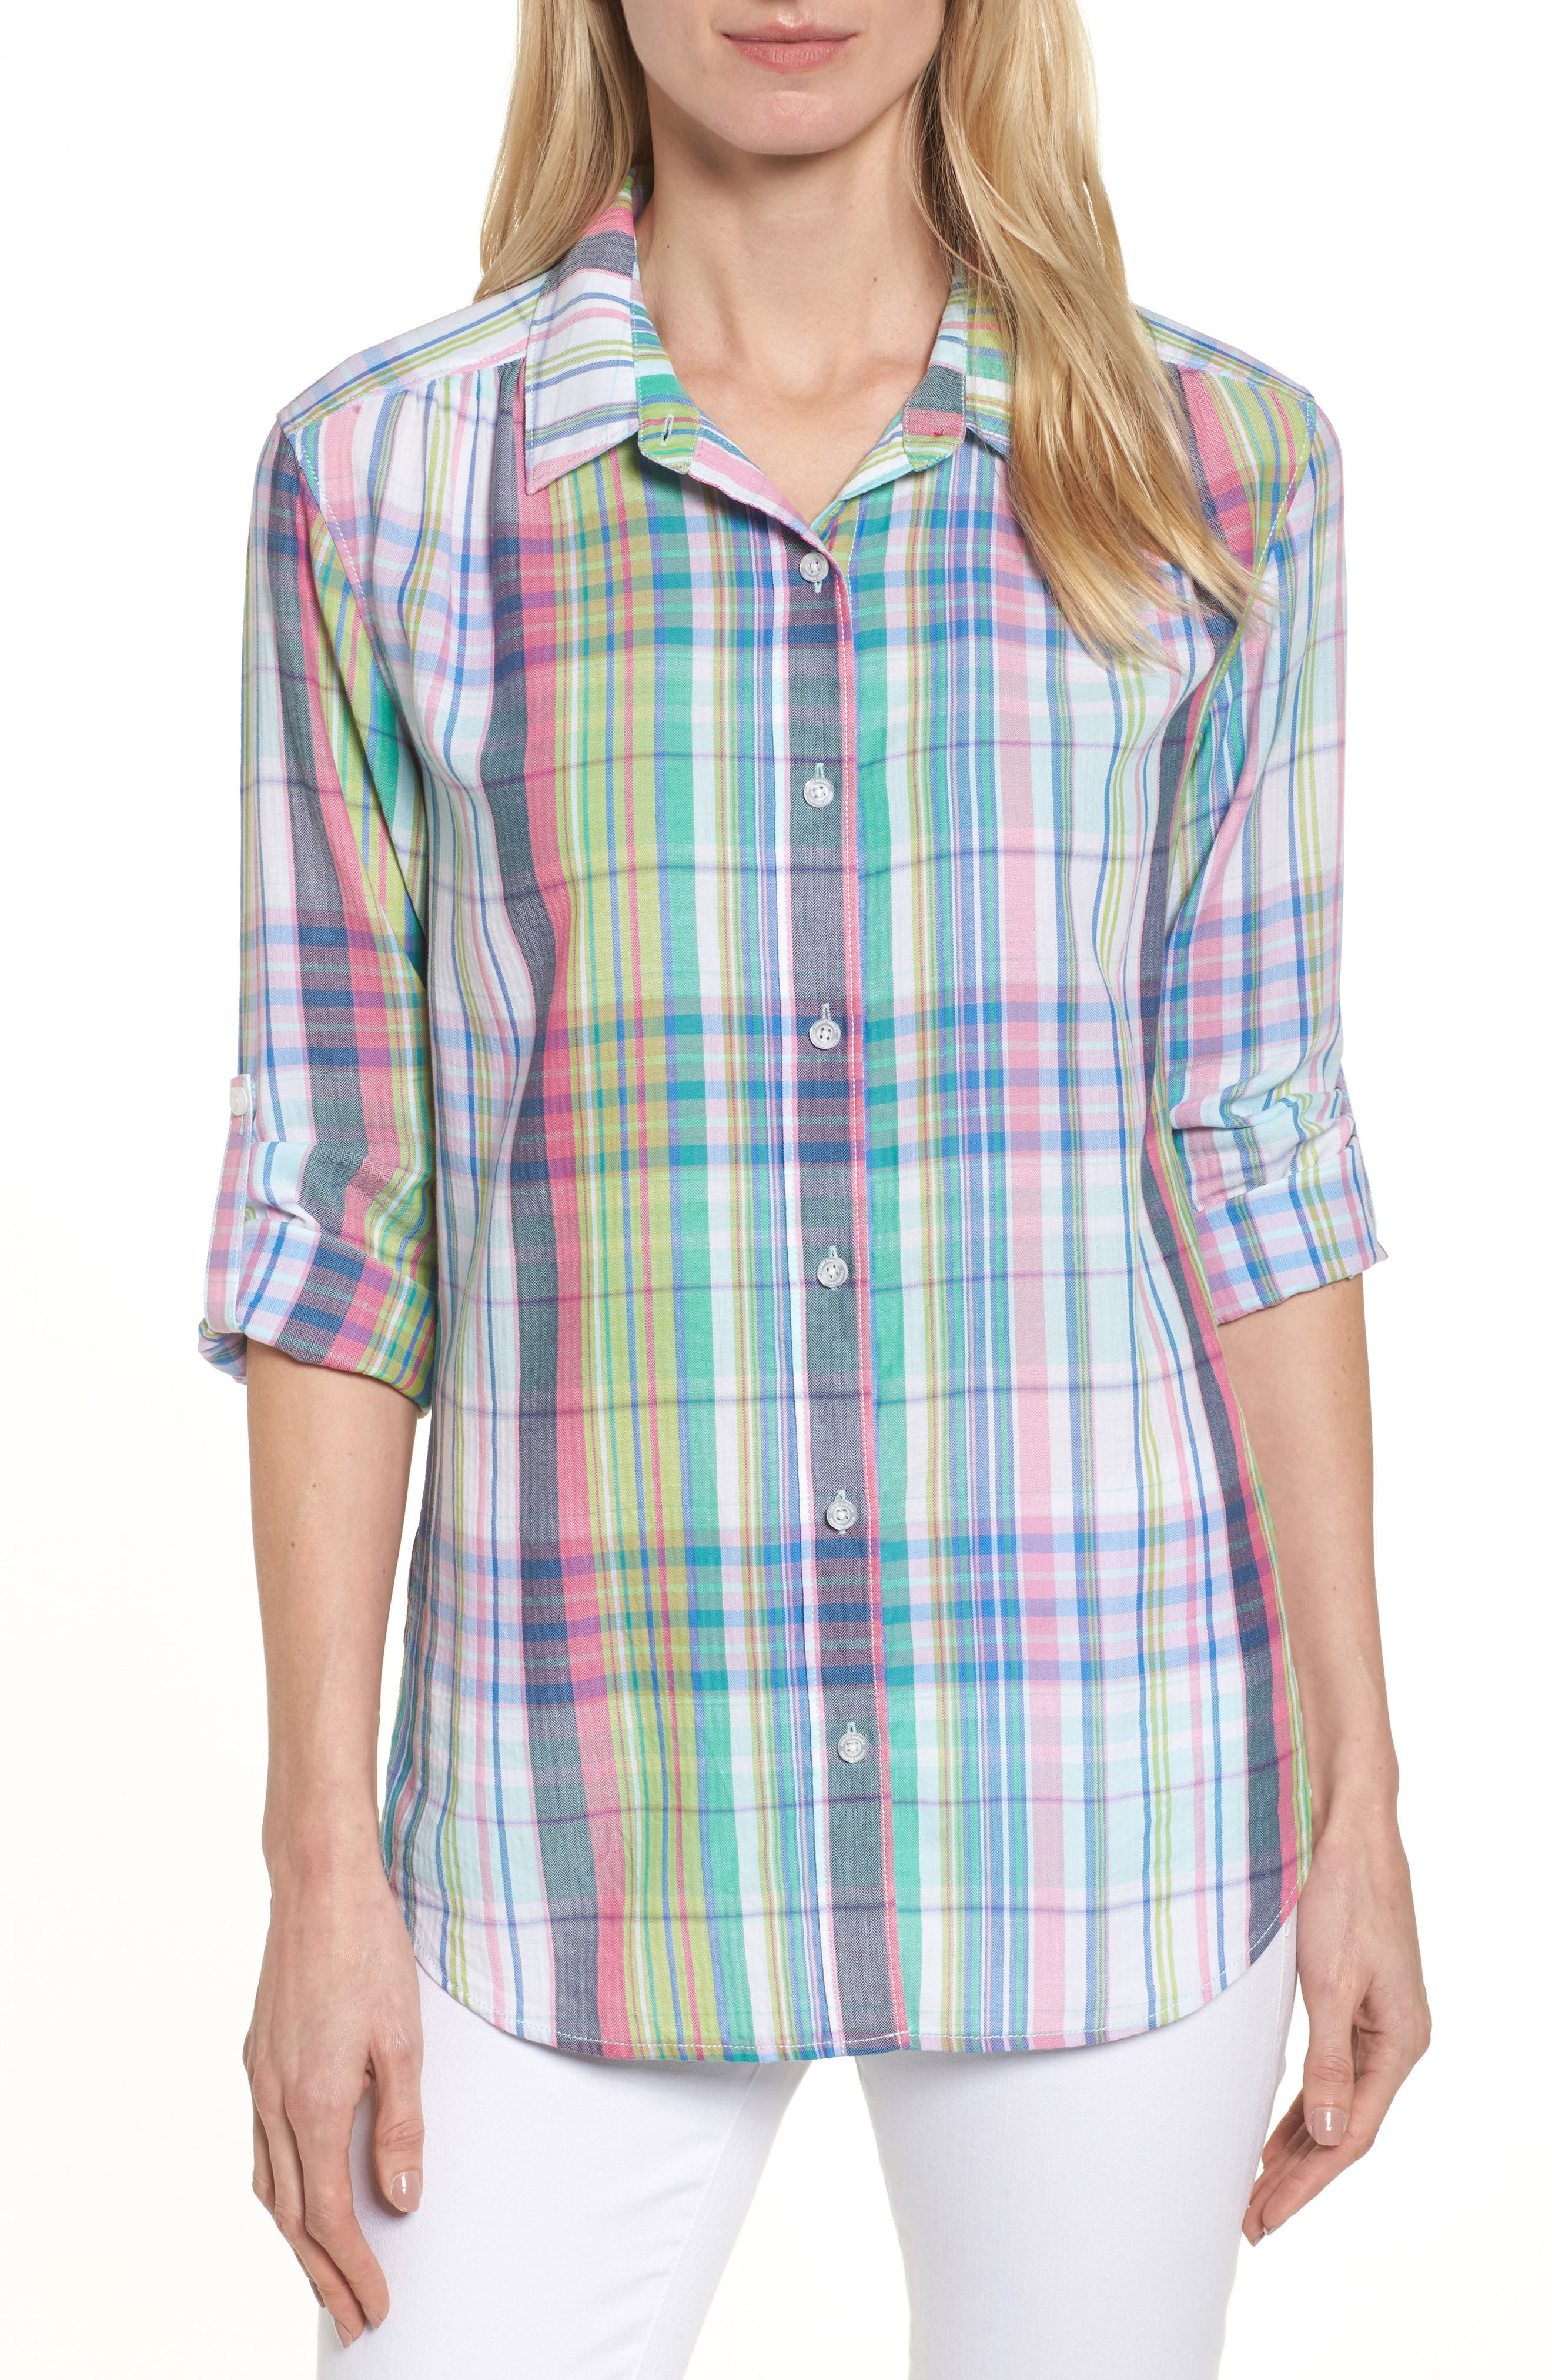 Alternate Image 1 Selected - Tommy Bahama Muffy Madras Button-Up Top